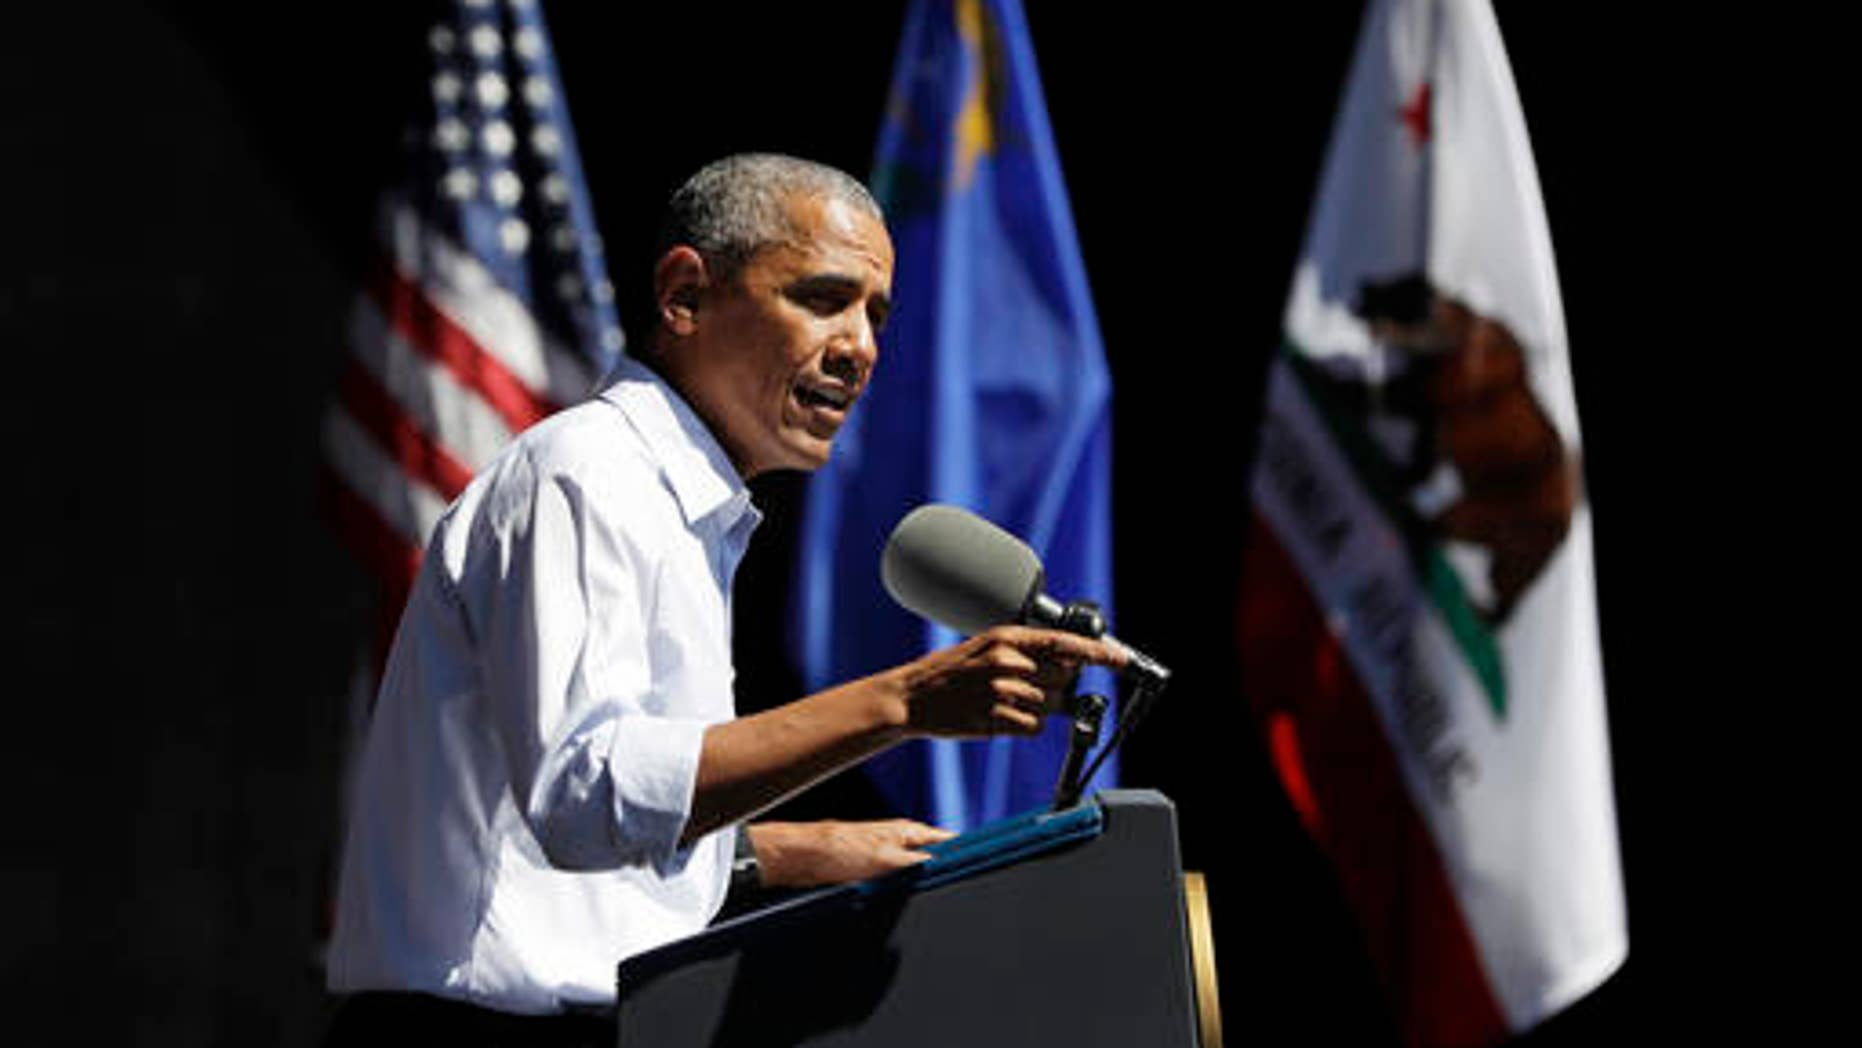 FILE--In this Aug. 31, 2016, President Barack Obama speaks during the 20th annual Lake Tahoe Summit at the Lake Tahoe Outdoor Arena at Harveys, in Stateline, Nev. Two weeks after President Obama made his first trip to Lake Tahoe with an impassioned plea about the inseparable link between the region's economy and its environment, Congress has taken a big step toward spending hundreds of millions of dollars to restore and protect the alpine lake over the next 10 years. (AP Photo/Carolyn Kaster, file)